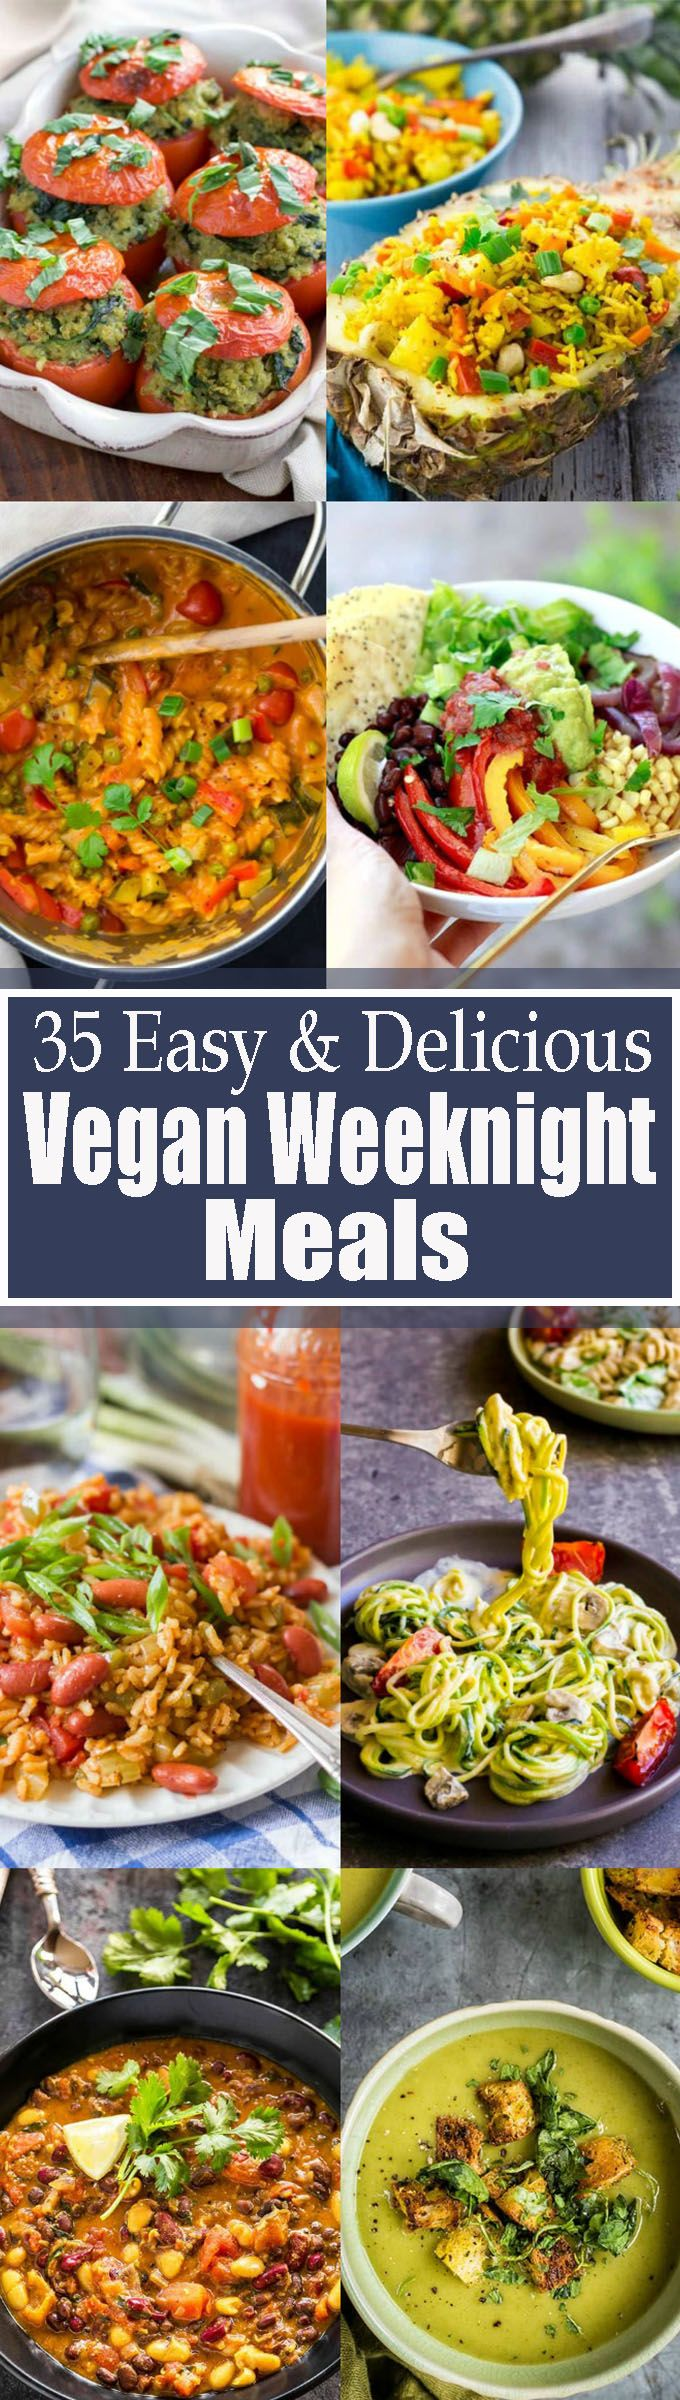 If you're looking for quick and easy vegan dinner recipes, this roundup of 3…